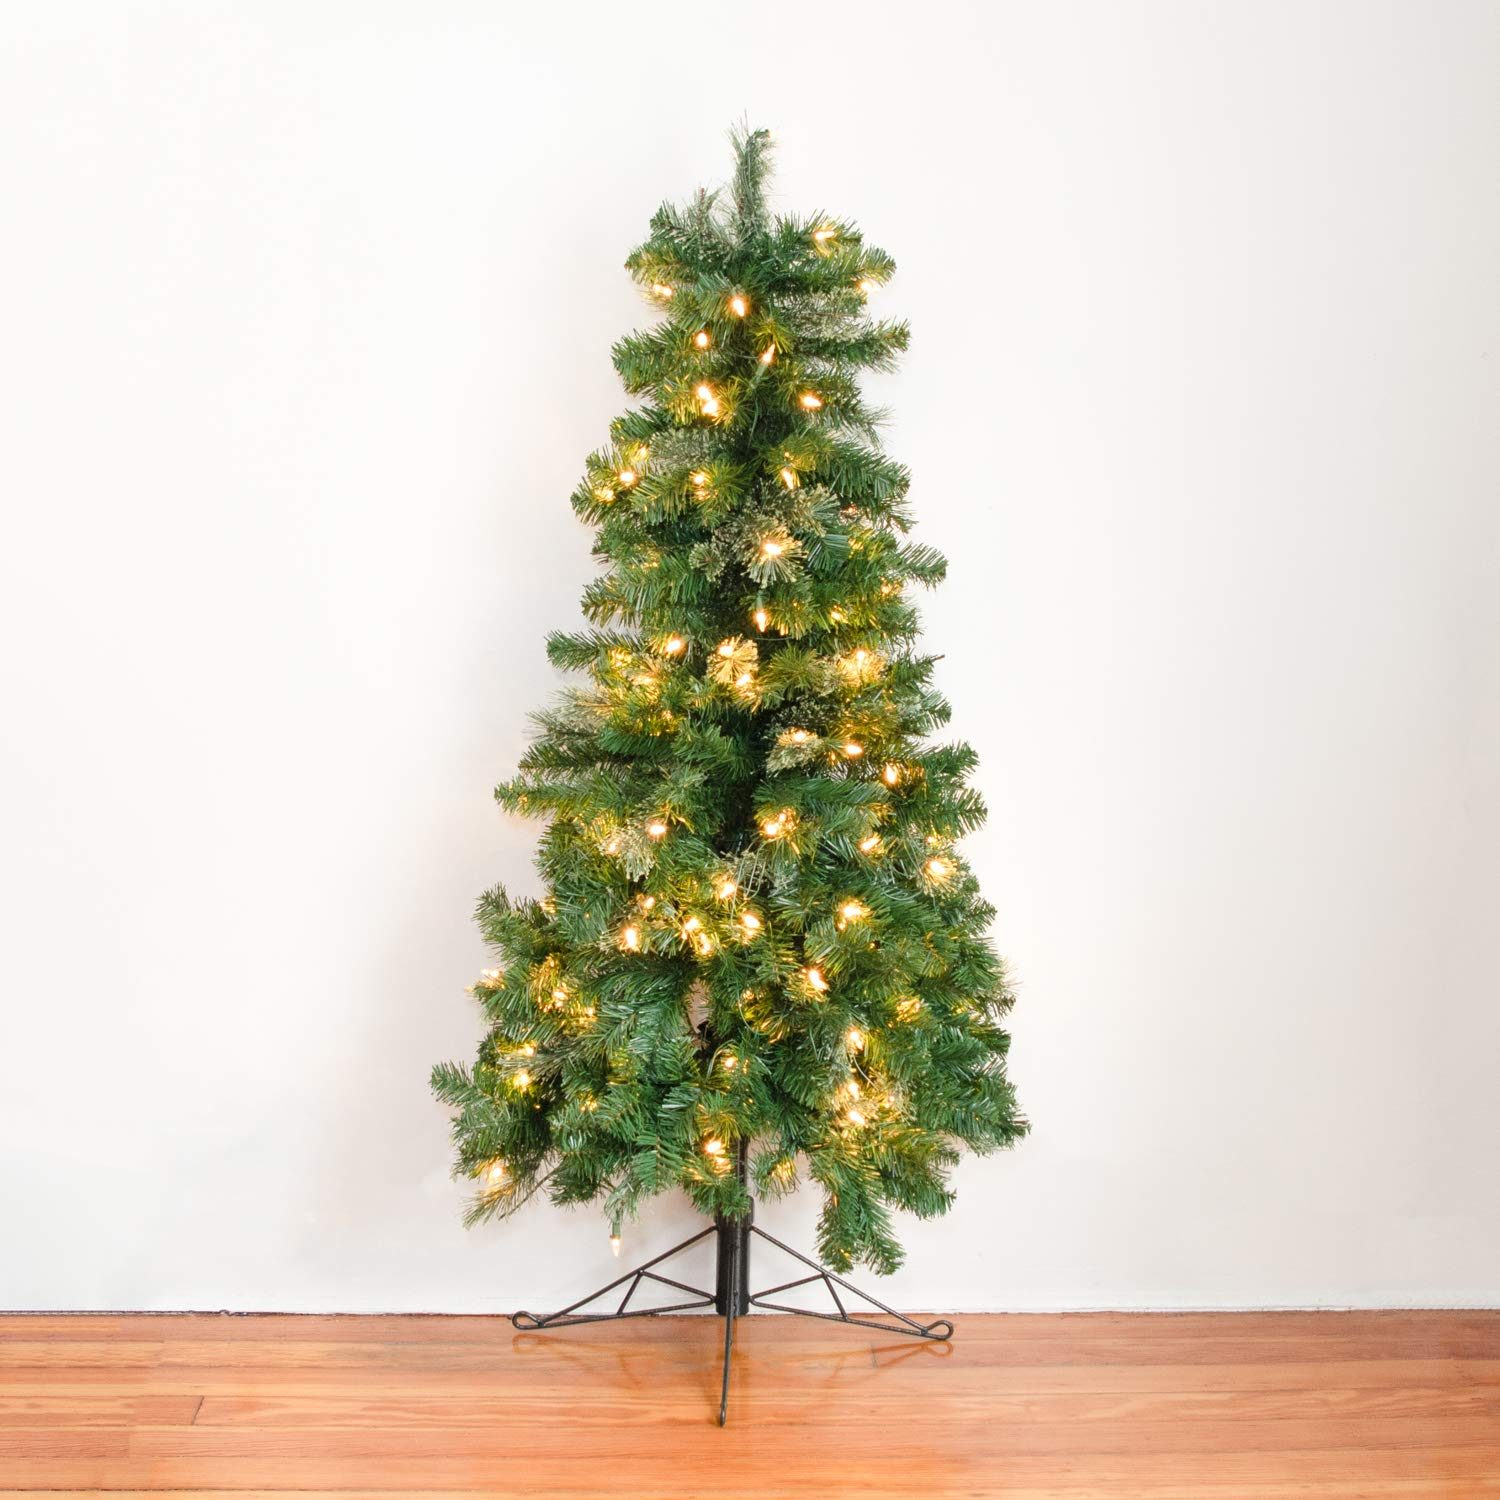 Best Small Christmas Tree Ideas For A Small Space